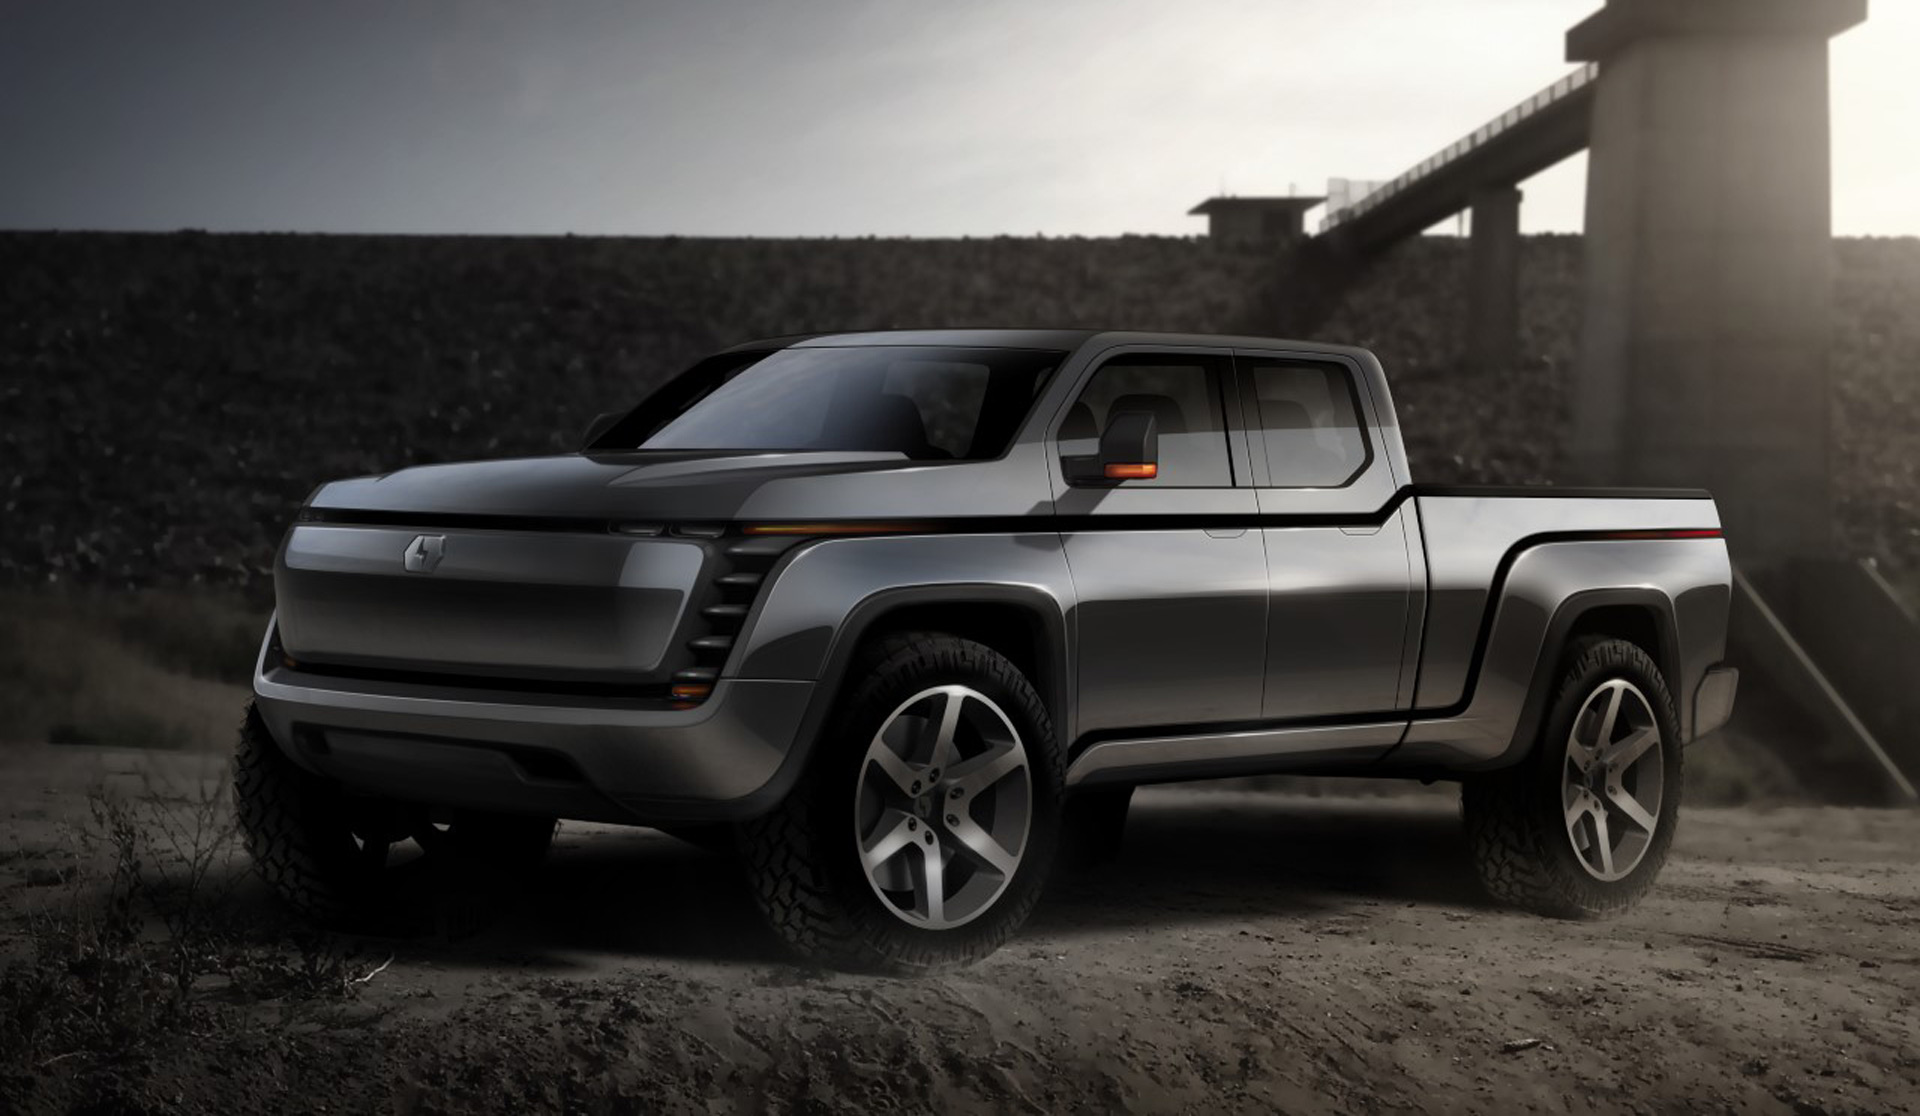 2021 Lordstown Endurance electric pickup priced from $52,500